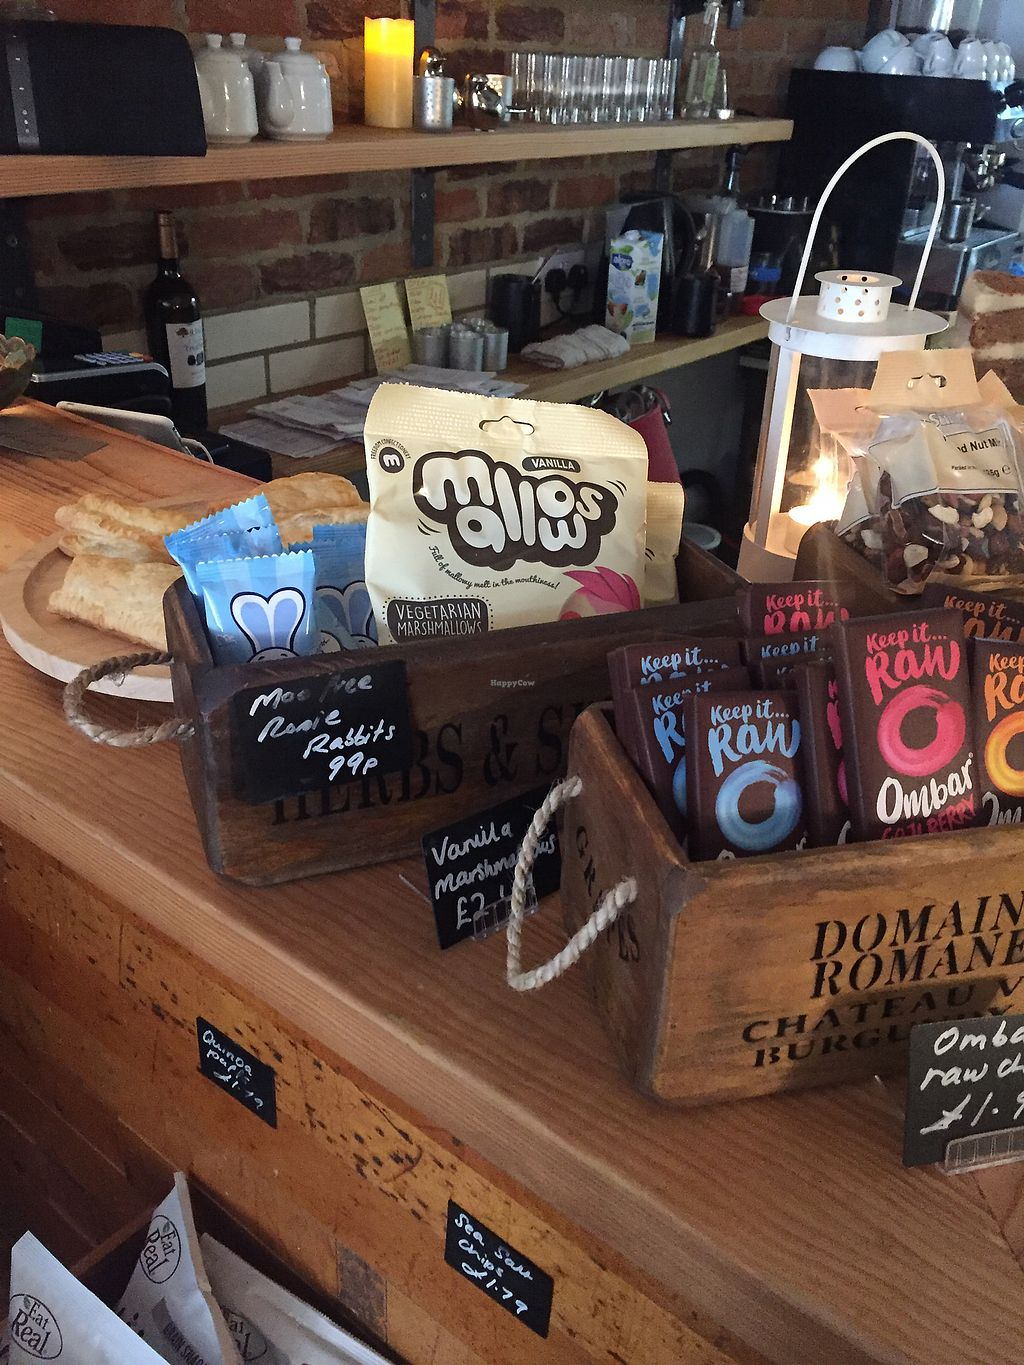 """Photo of Crazy Bean Cafe  by <a href=""""/members/profile/bakeydoesntbake"""">bakeydoesntbake</a> <br/>Snacks at the till <br/> April 1, 2018  - <a href='/contact/abuse/image/79668/379578'>Report</a>"""